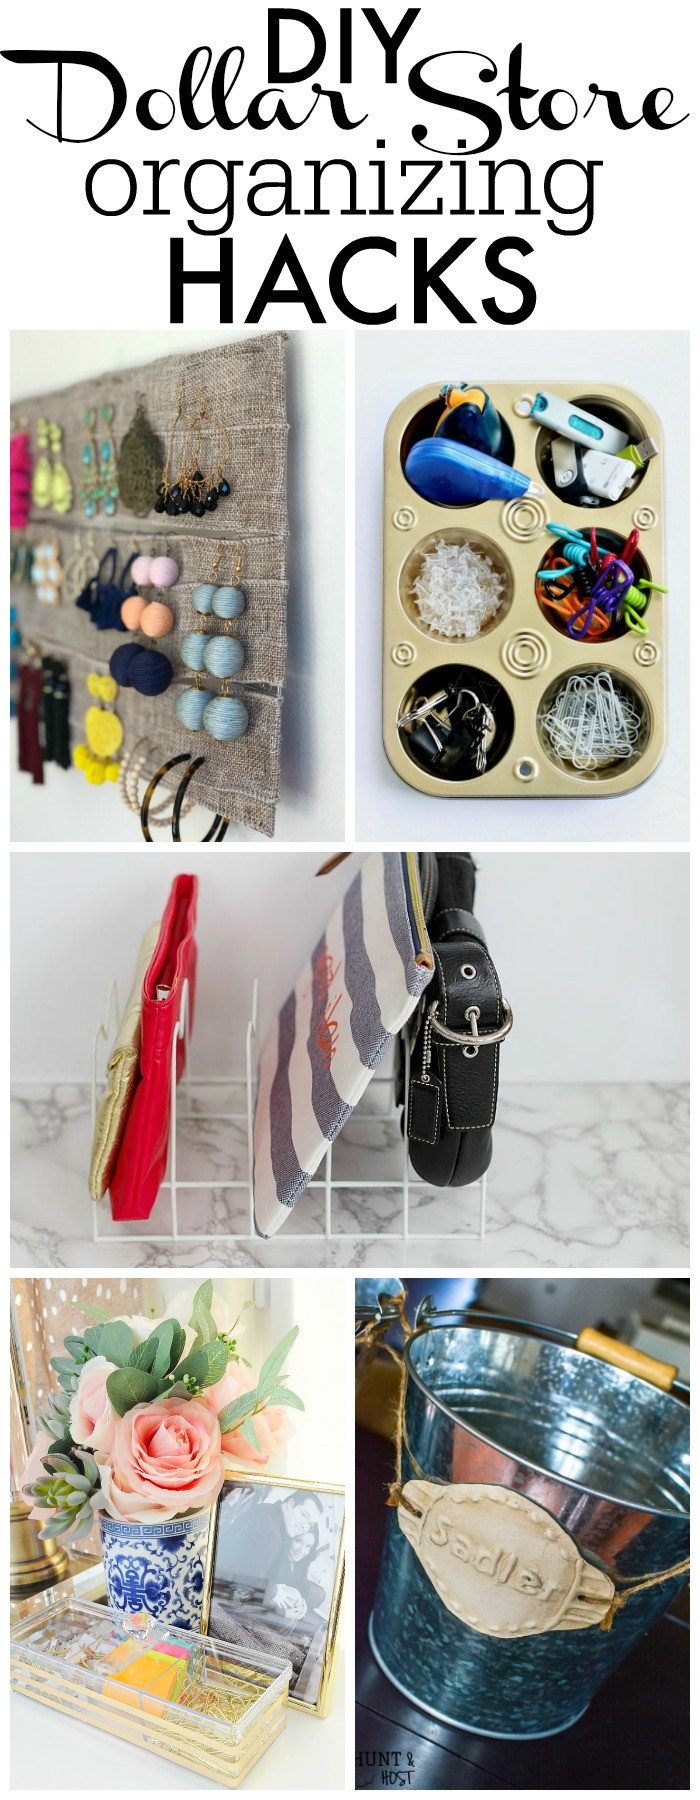 Best ideas about DIY Organizing Hacks . Save or Pin Dollar Store DIY Gold & Acrylic Organizers Now.